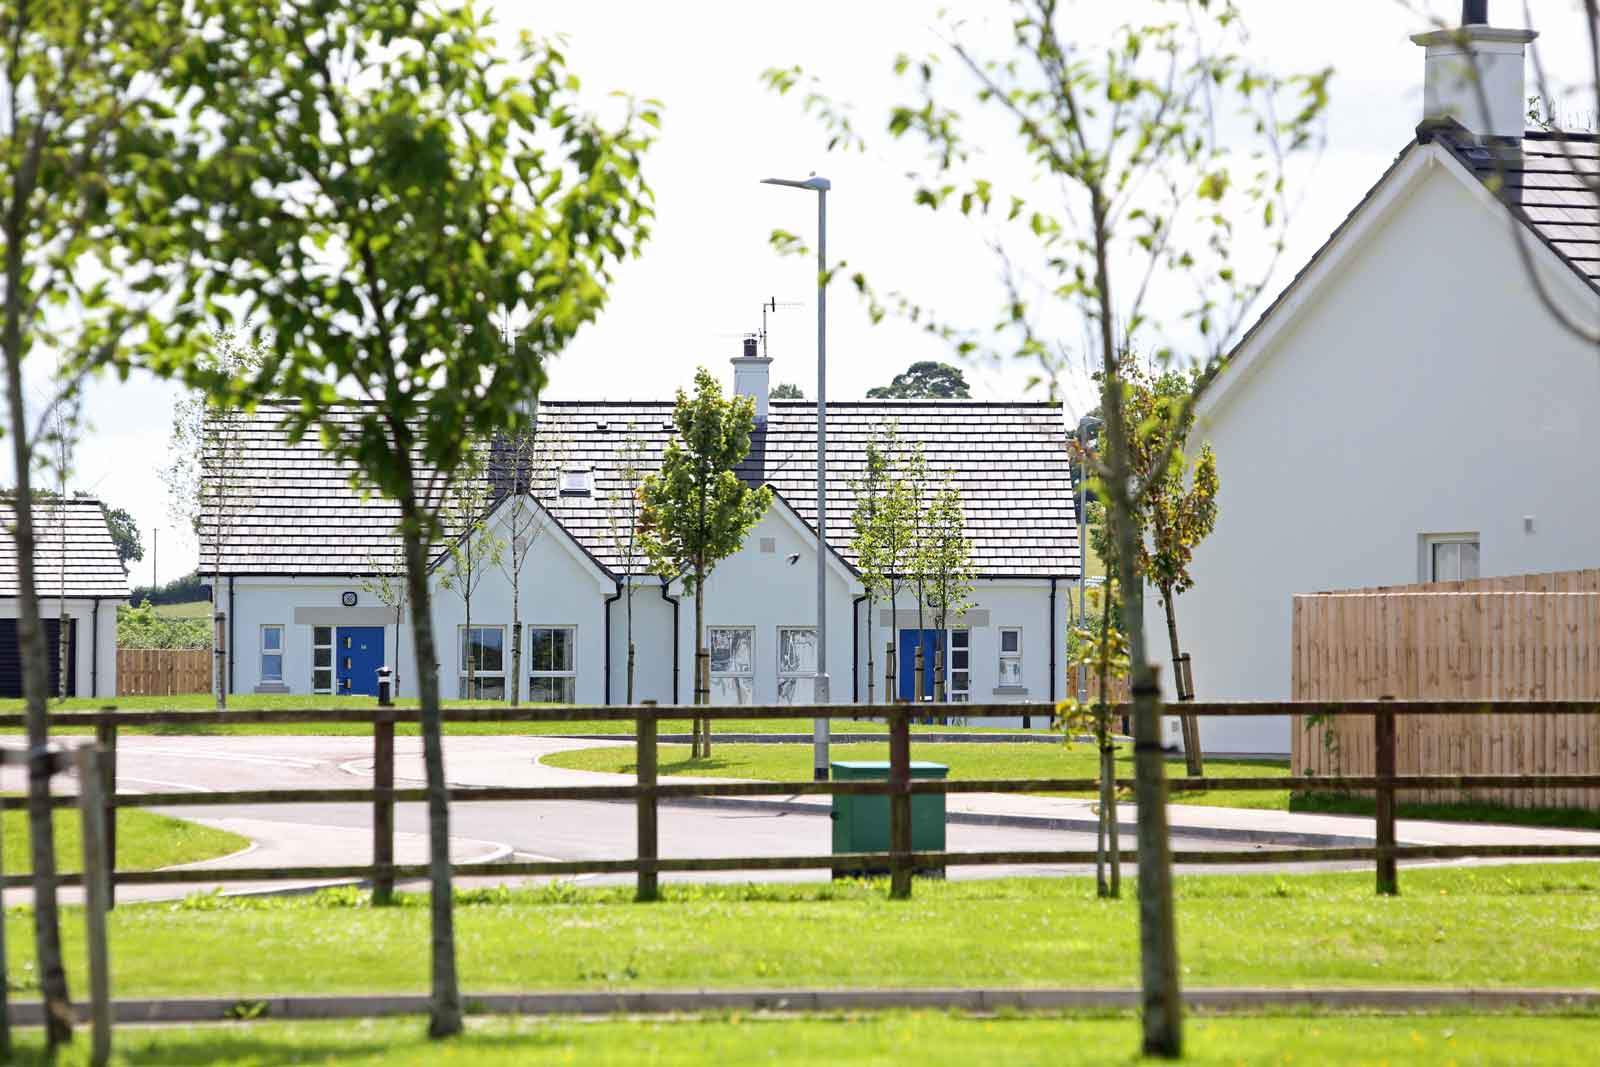 Retirement Village, Banbridge